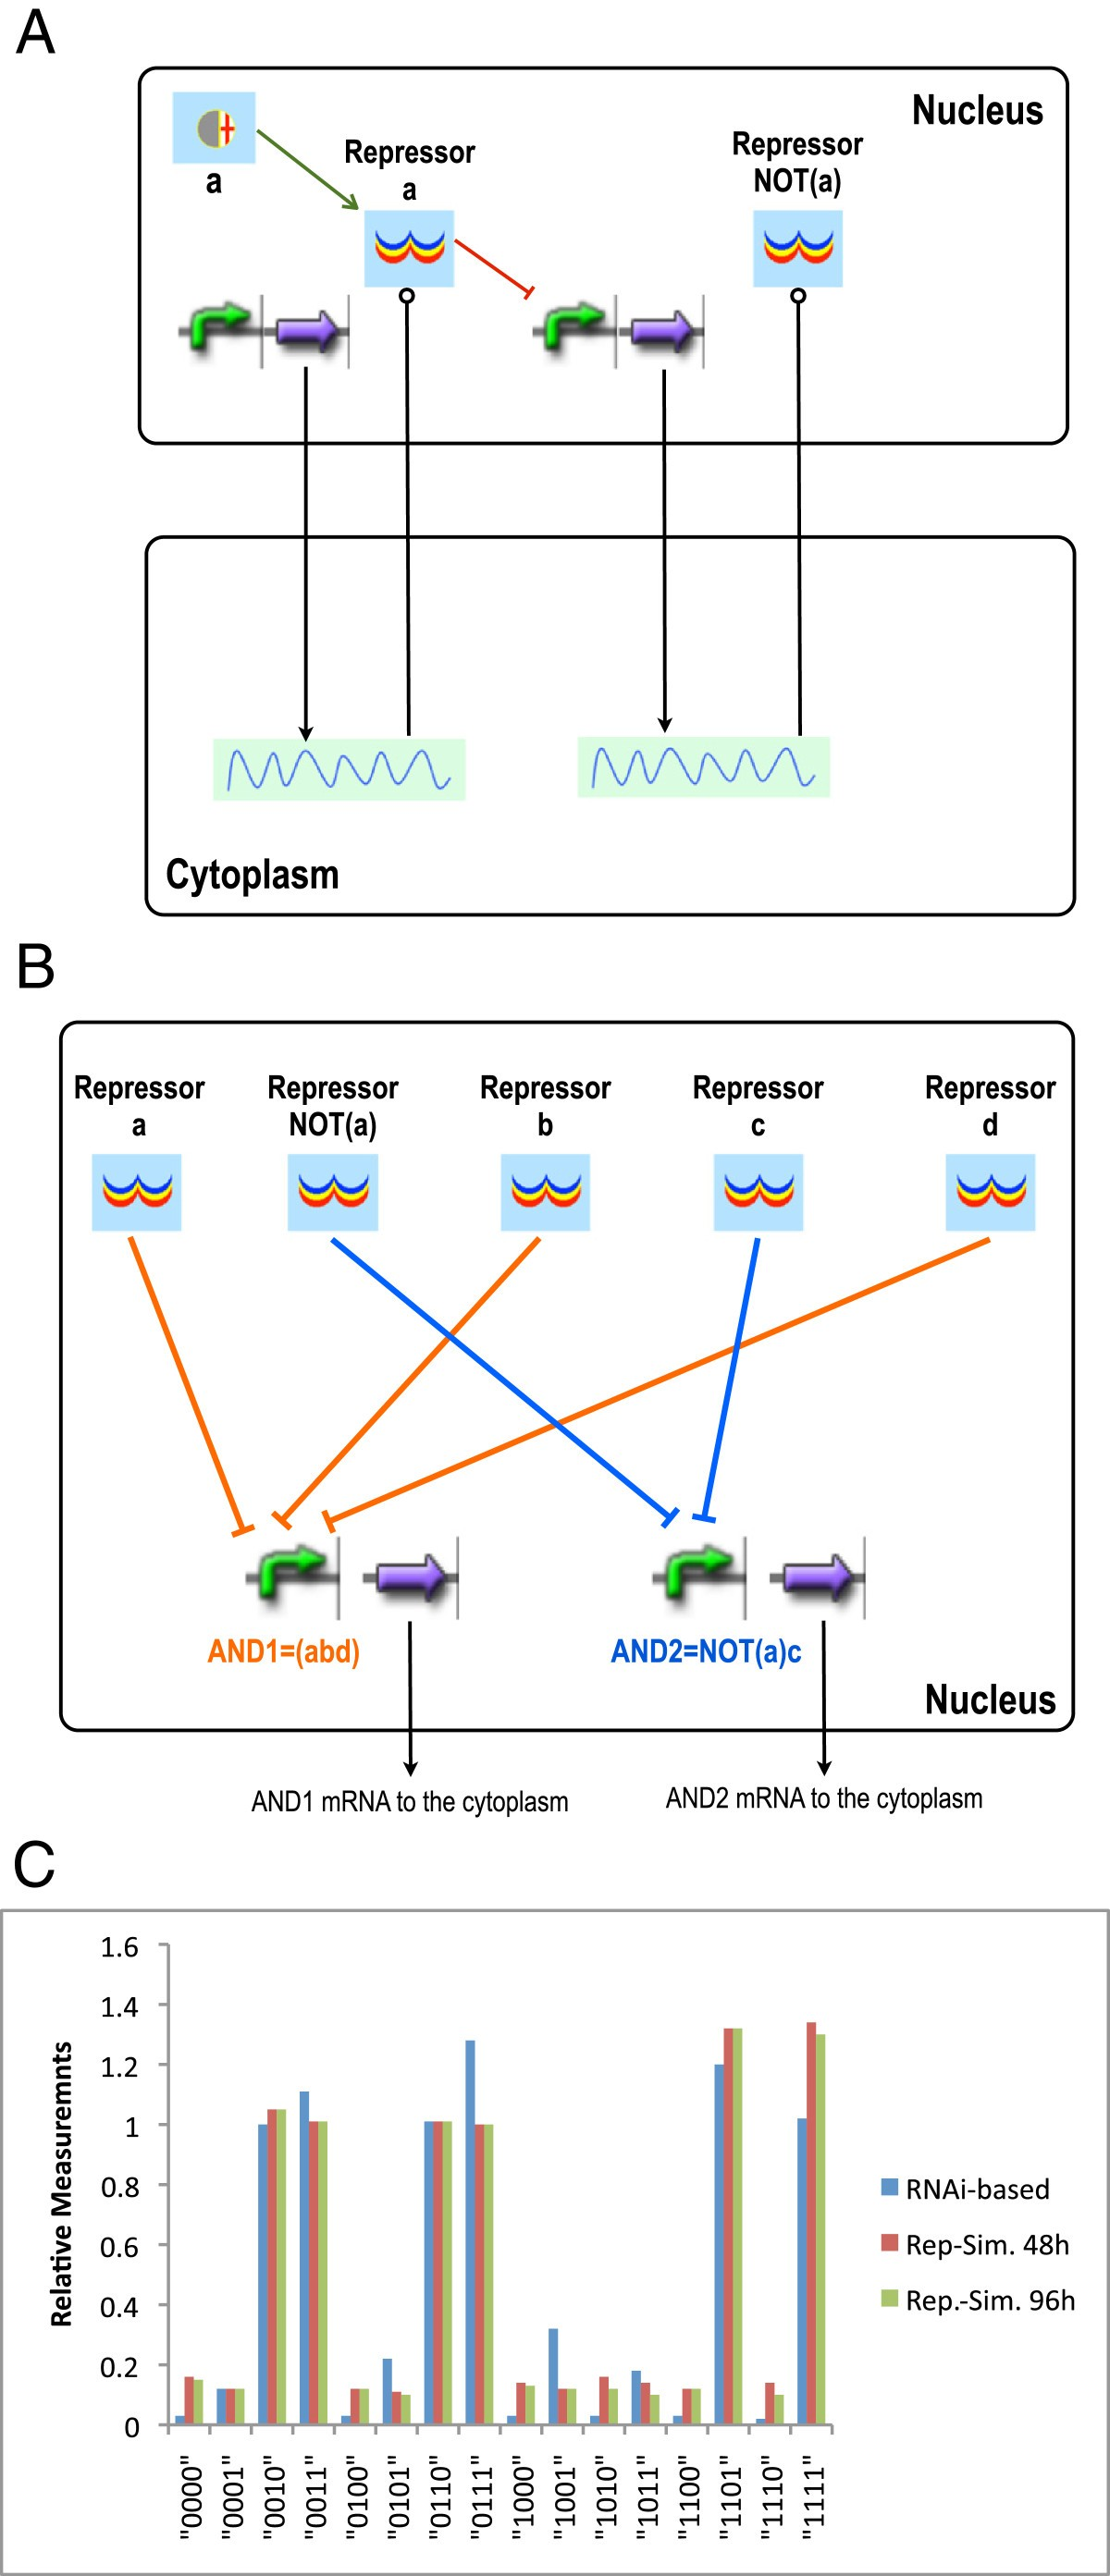 Modular Rule Based Modeling For The Design Of Eukaryotic Synthetic Basis Different Regulator Types Principles Genetic Circuit Figure 6